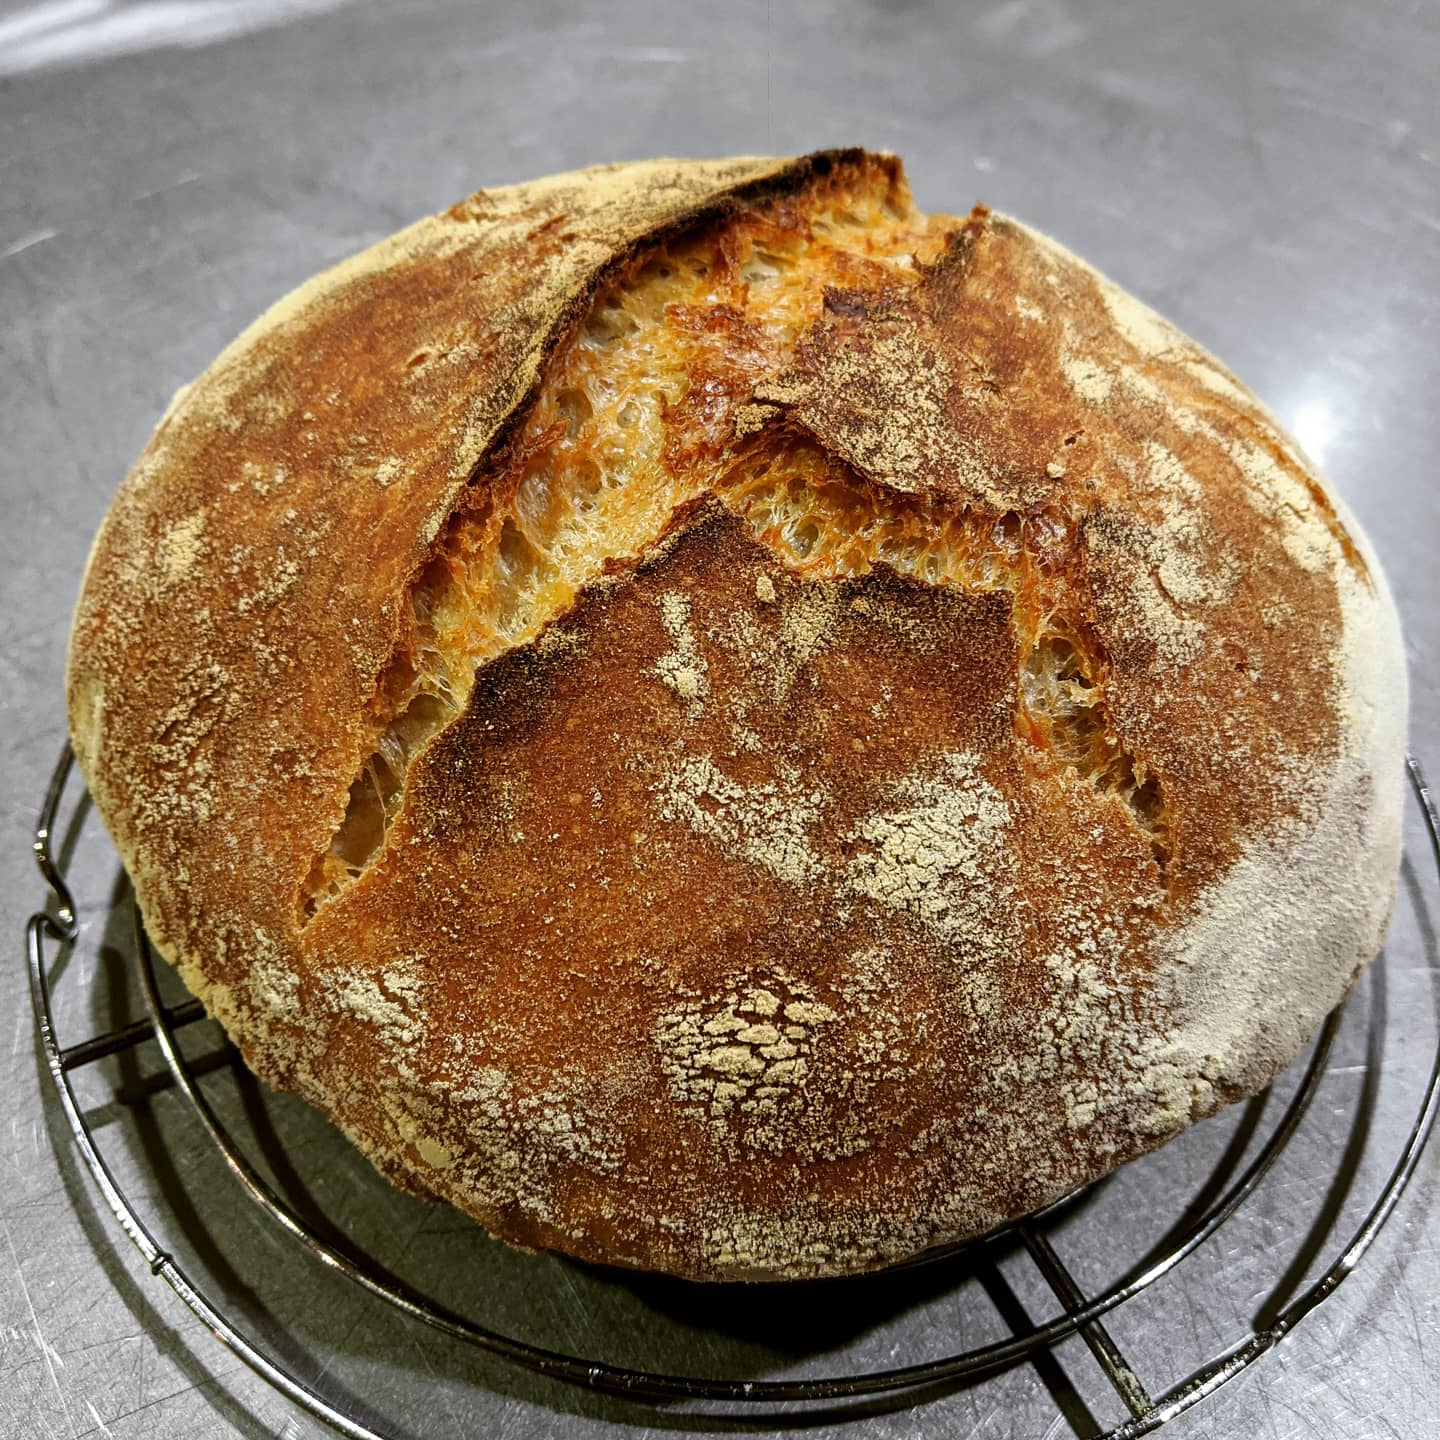 I regret to inform you that I, too, am a no-knead bread person.